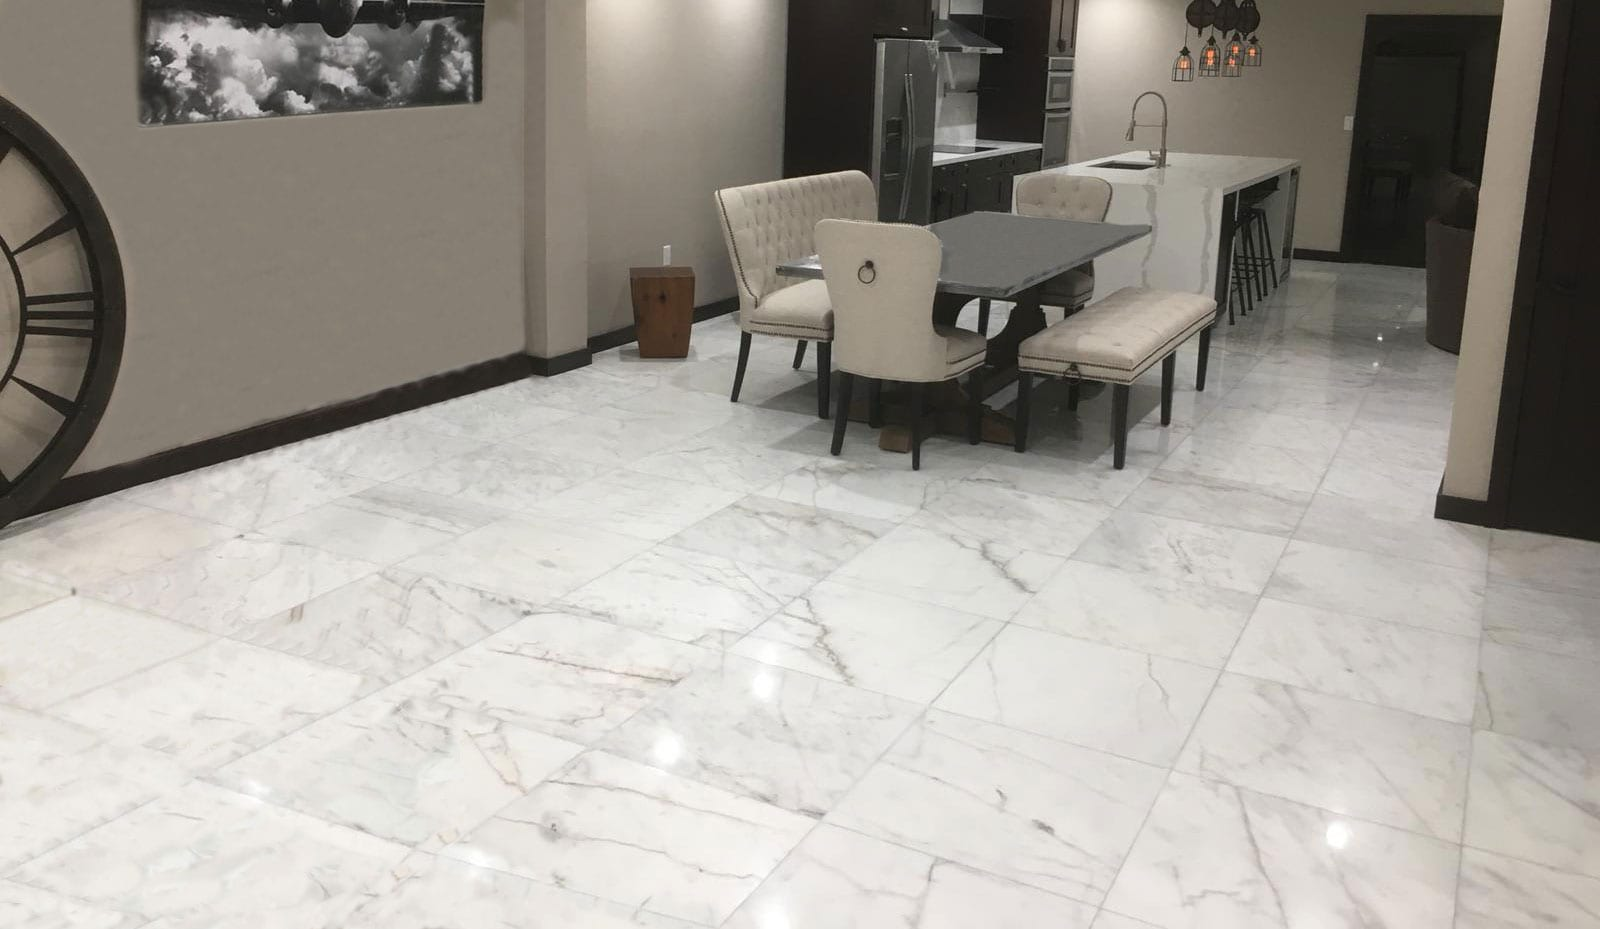 Stoneline-Group-Dolomite-Marble-Collection-Marble-Tile-Floor-Marble-Design-Living-Room-Pictures